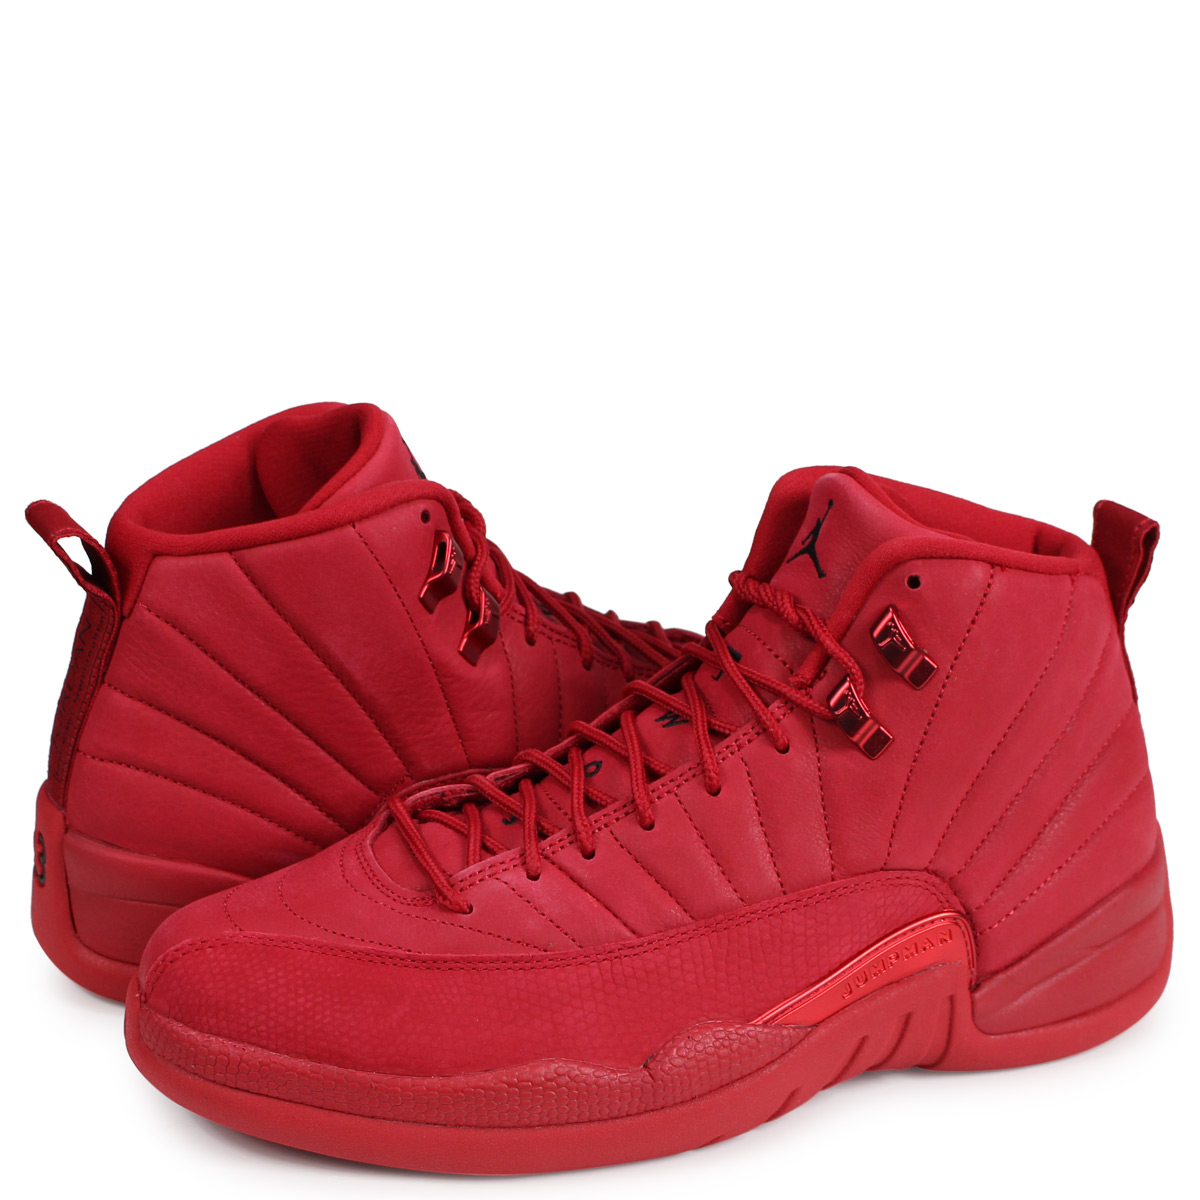 huge selection of 5b5f9 af40c Nike NIKE Air Jordan 12 レトロースニーカーメンズ AIR JORDAN 12 RETRO red 130,690-601